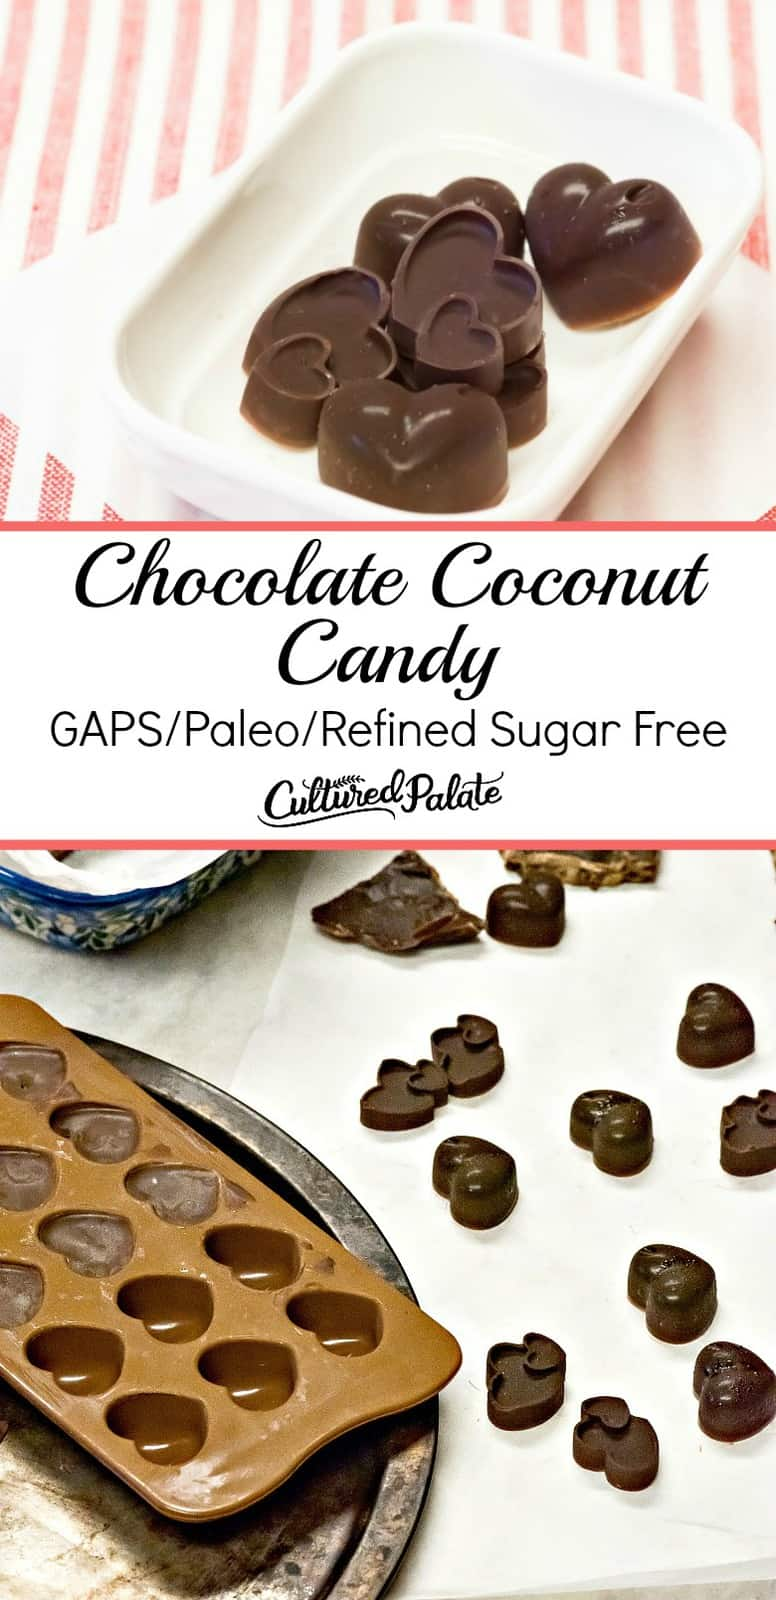 Chocolate Coconut Candy shown in molds, bowl, table with text overlay